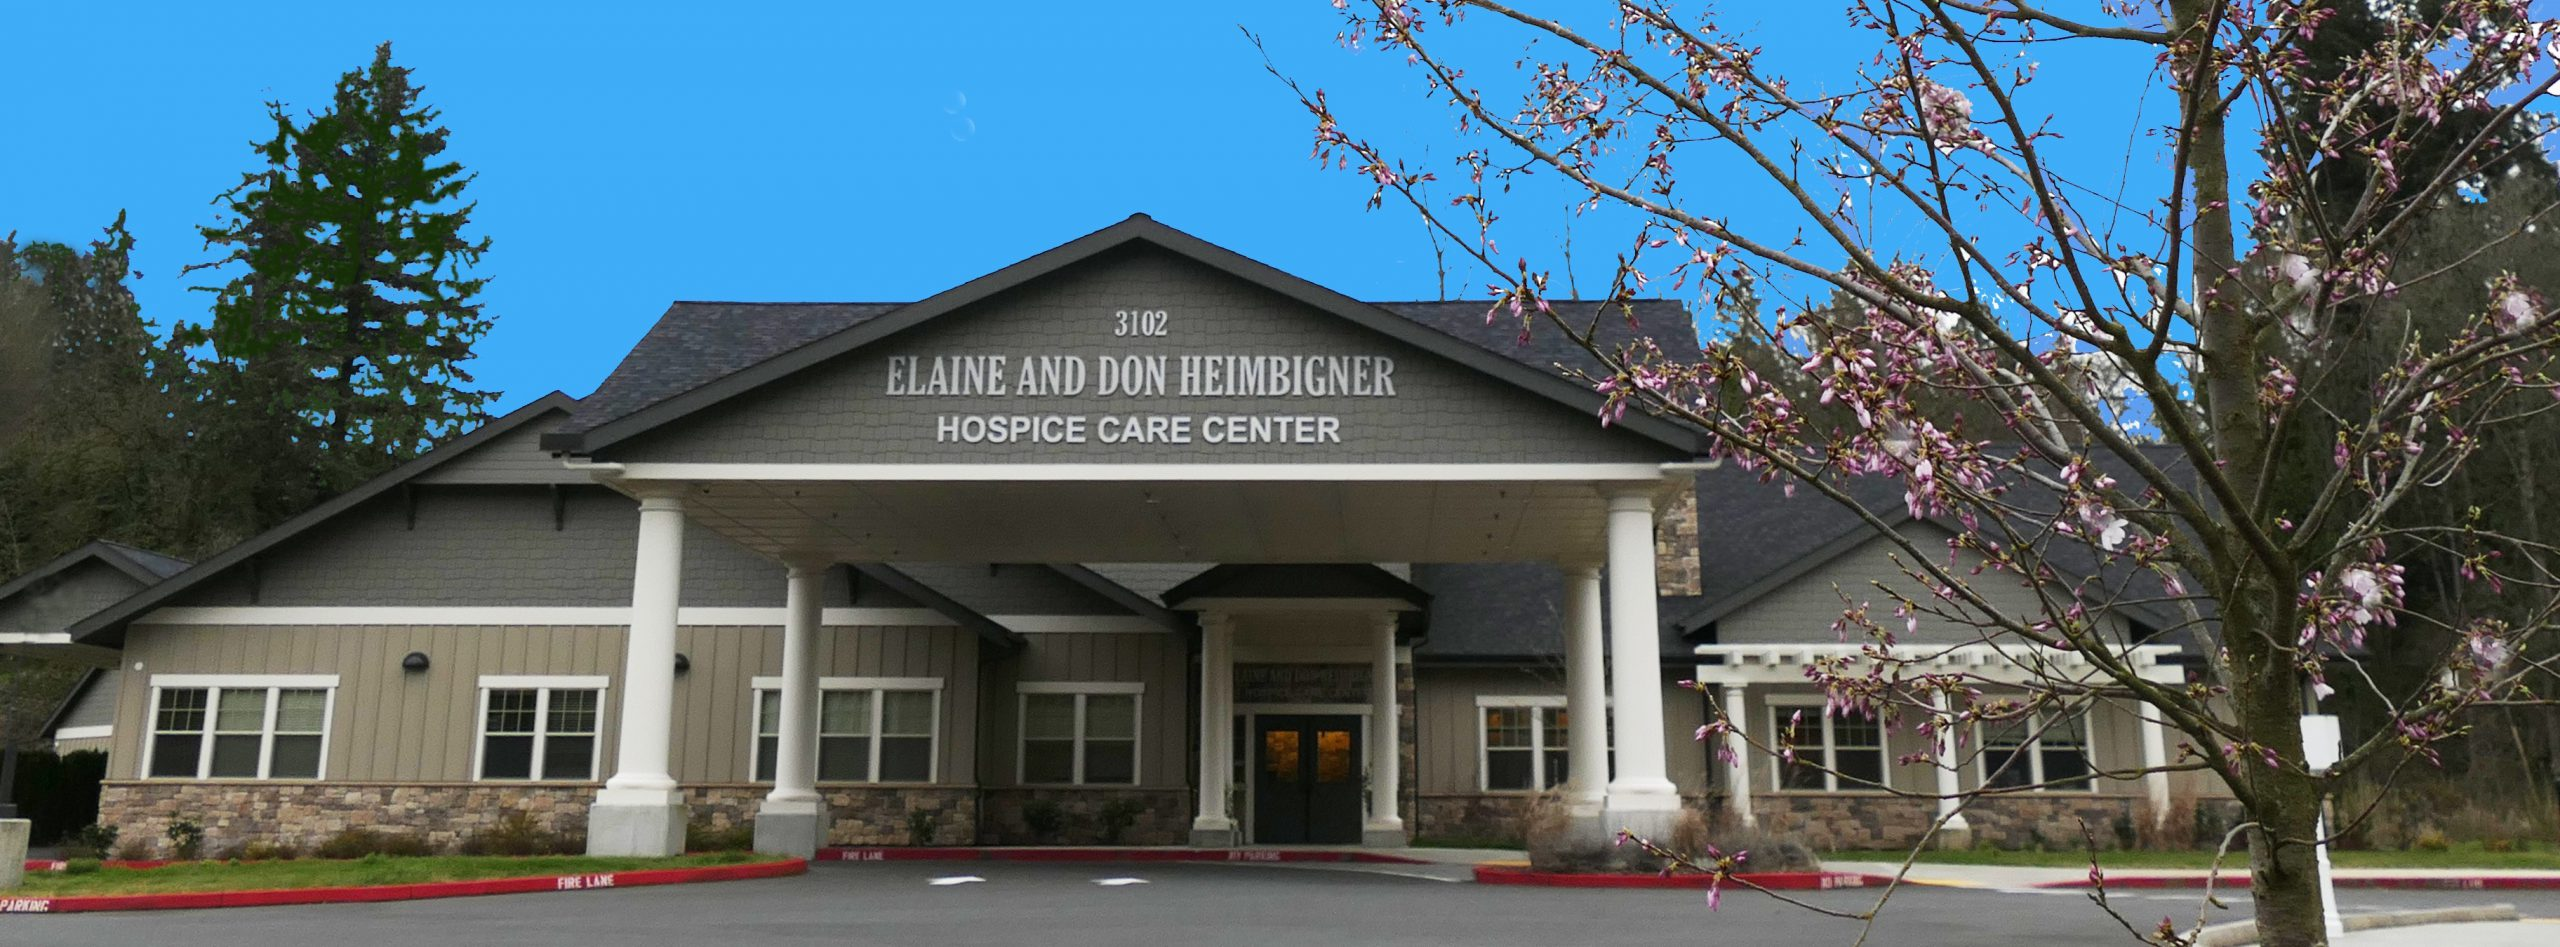 Front entrance of the Elaine and Don Heimbigner Hospice Care Center with a blue sky and a blooming dogwood tree